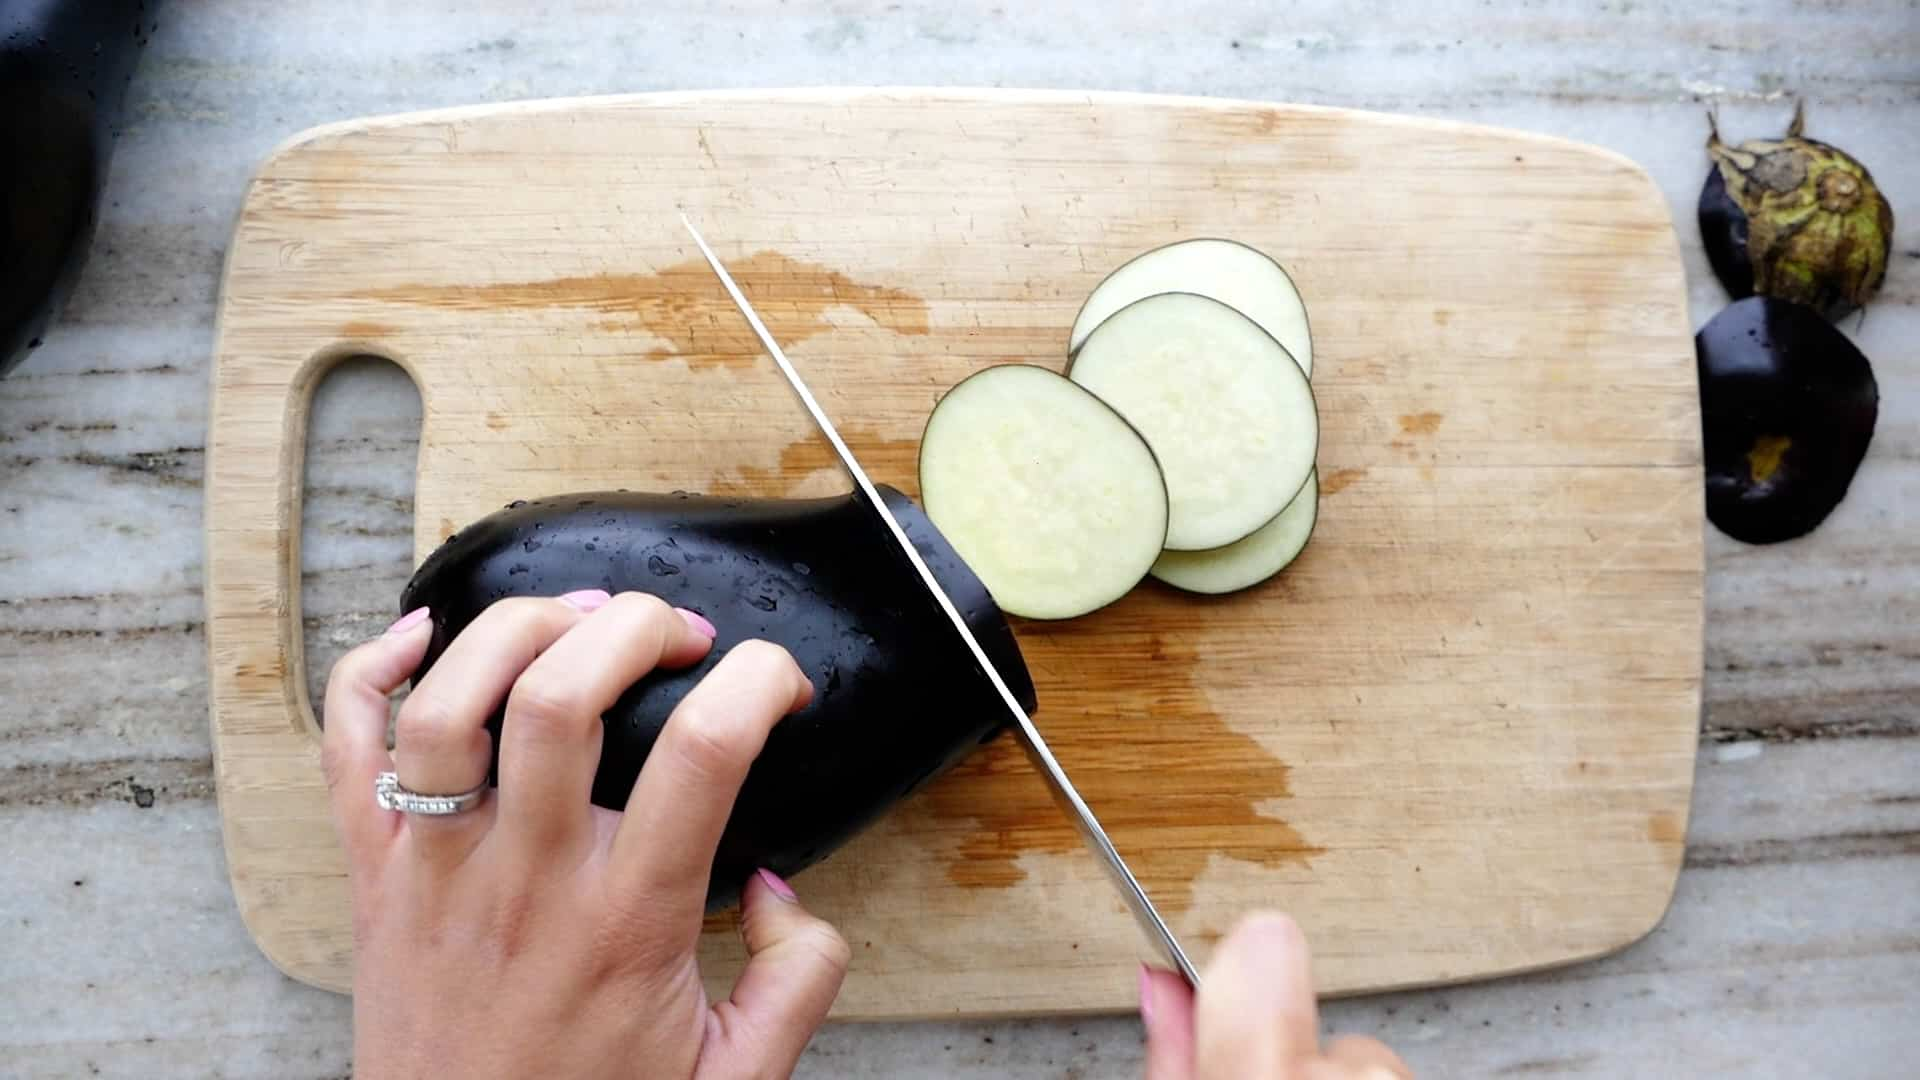 woman slicing an eggplant into rounds over a bamboo cutting board